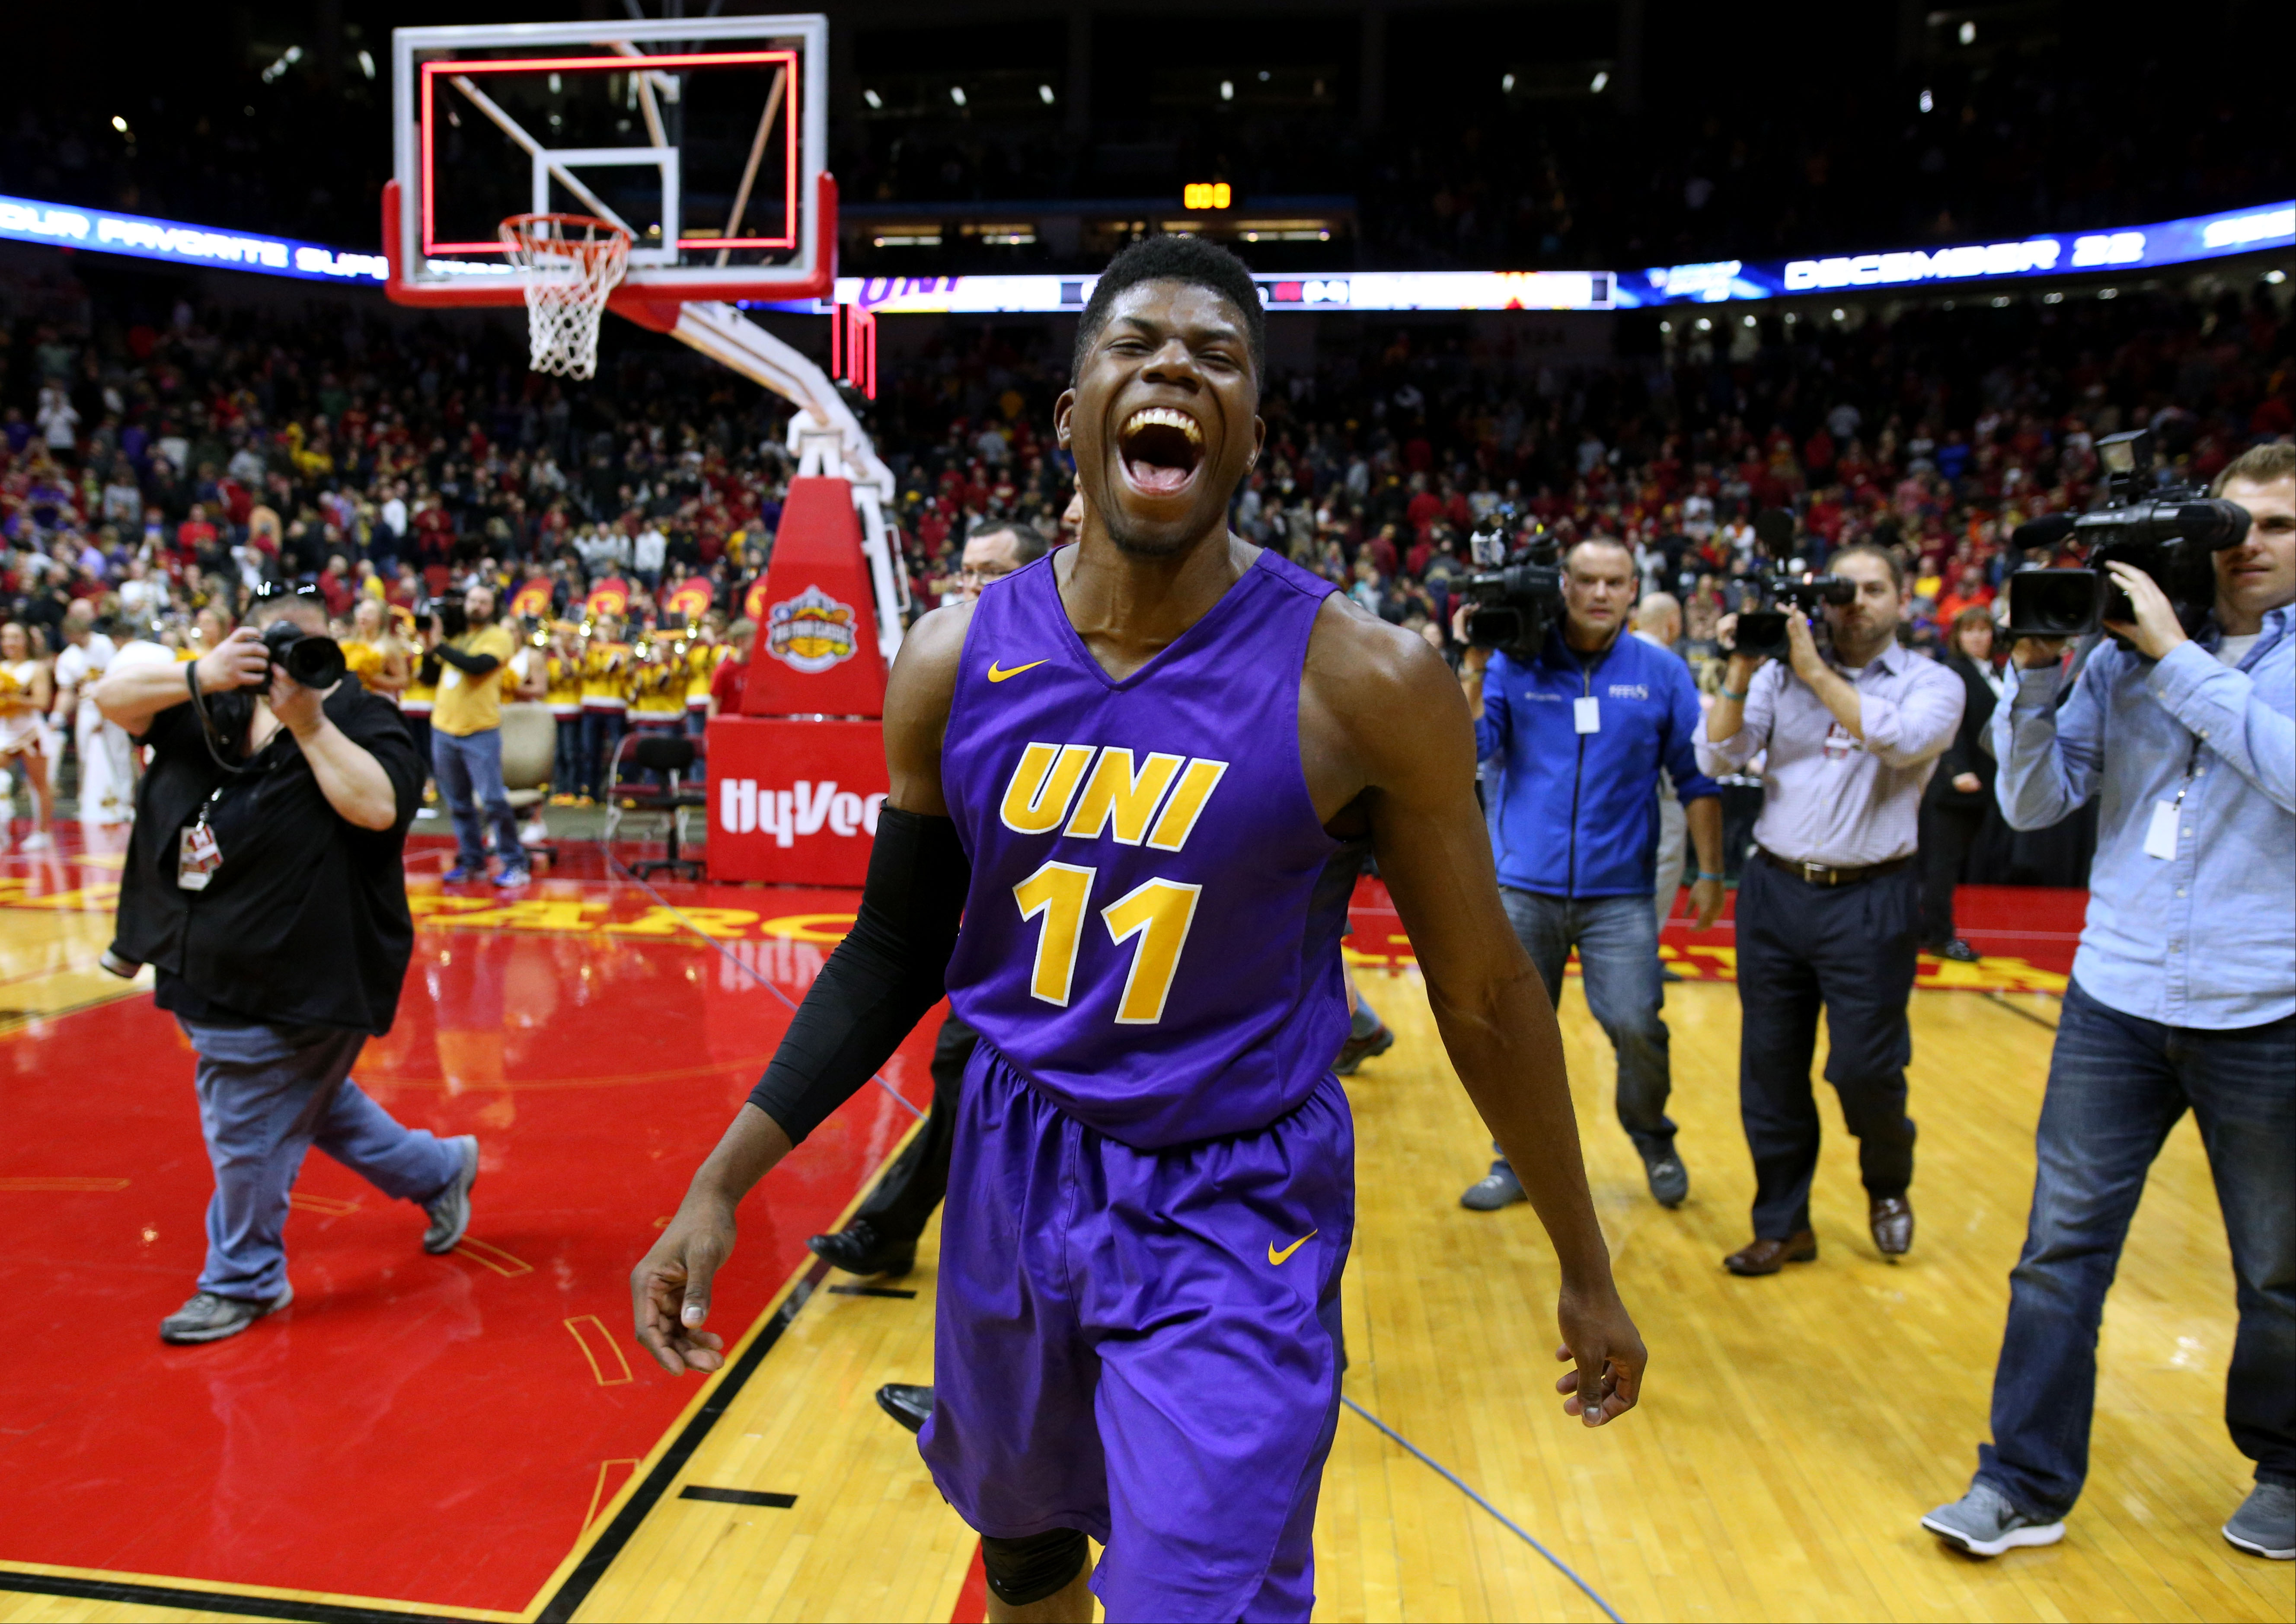 Northern Iowa guard Wes Washpun celebrates after the final buzzer at an NCAA college basketball game against Iowa State, Saturday, Dec. 19, 2015, in Des Moines, Iowa. Northern Iowa won 81-79. (AP Photo/Justin Hayworth)